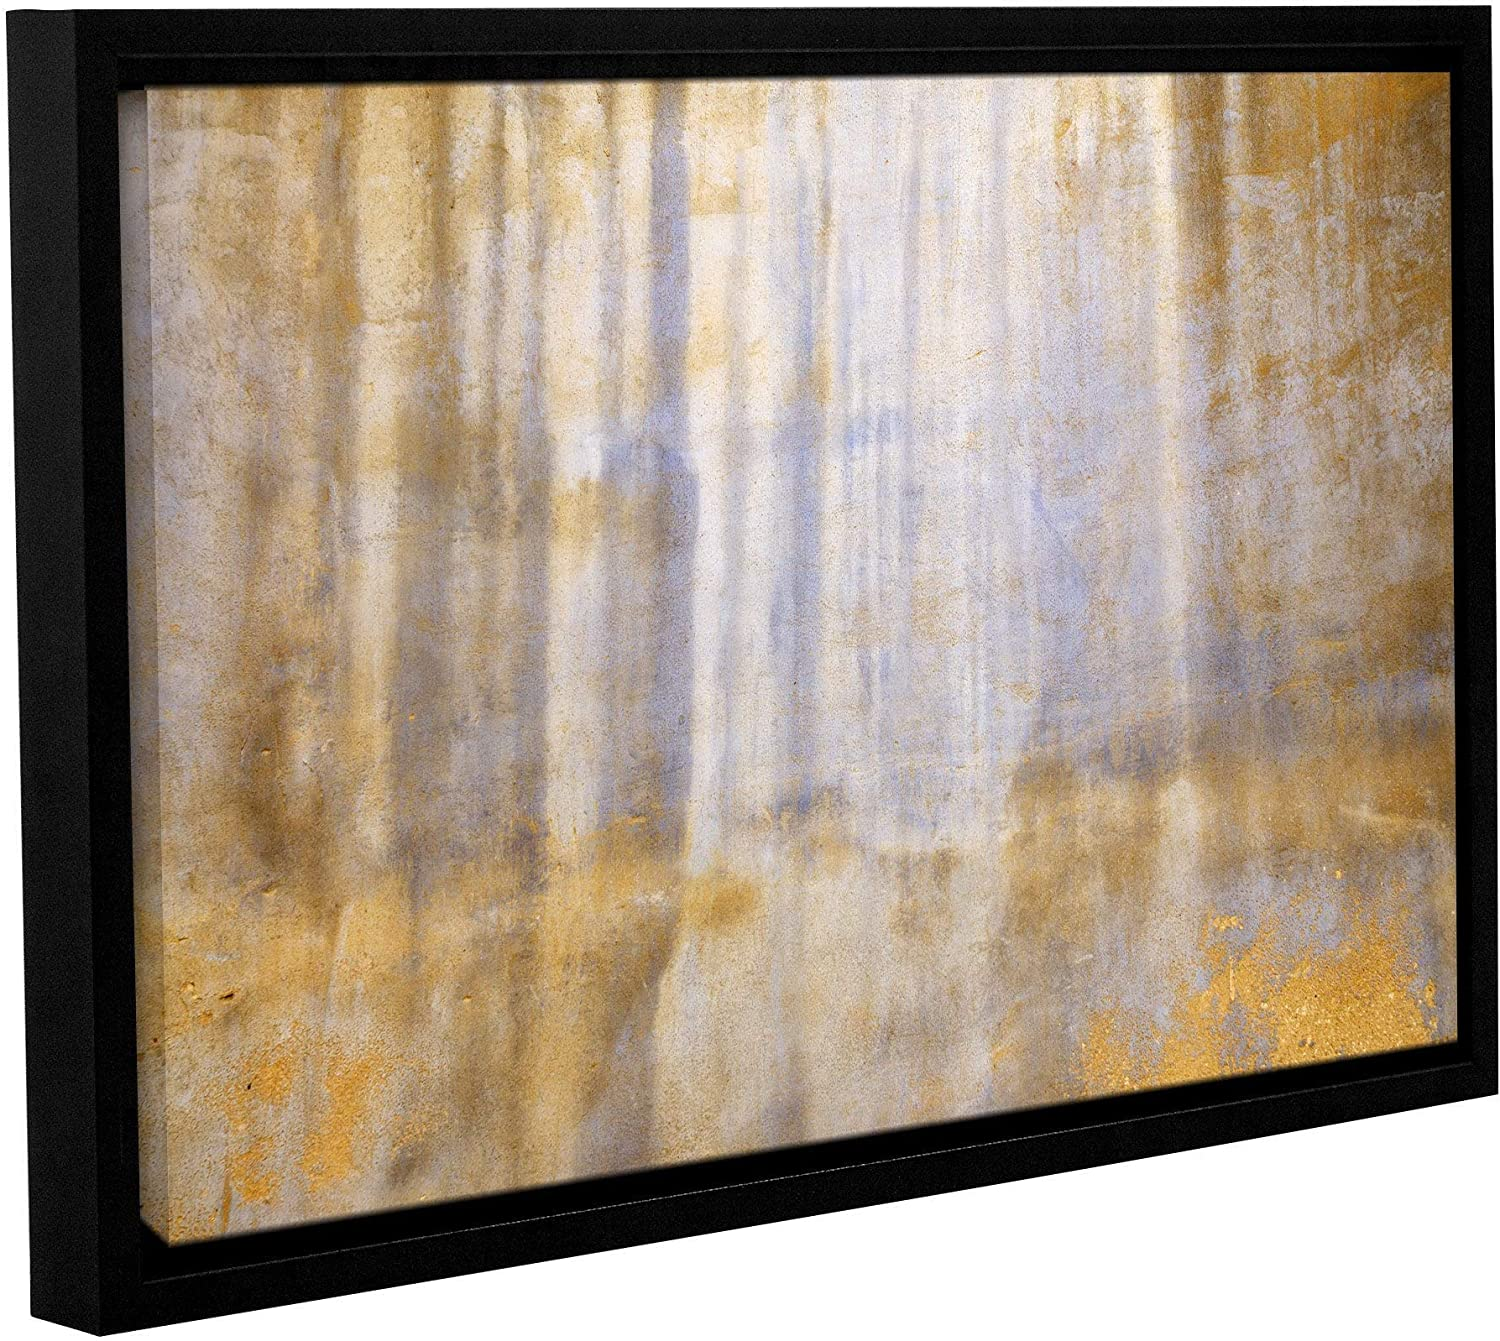 National uniform free shipping ArtWall Super-cheap Cora Niele's ' Weathered Stucco' Gallery Wrapped Floater